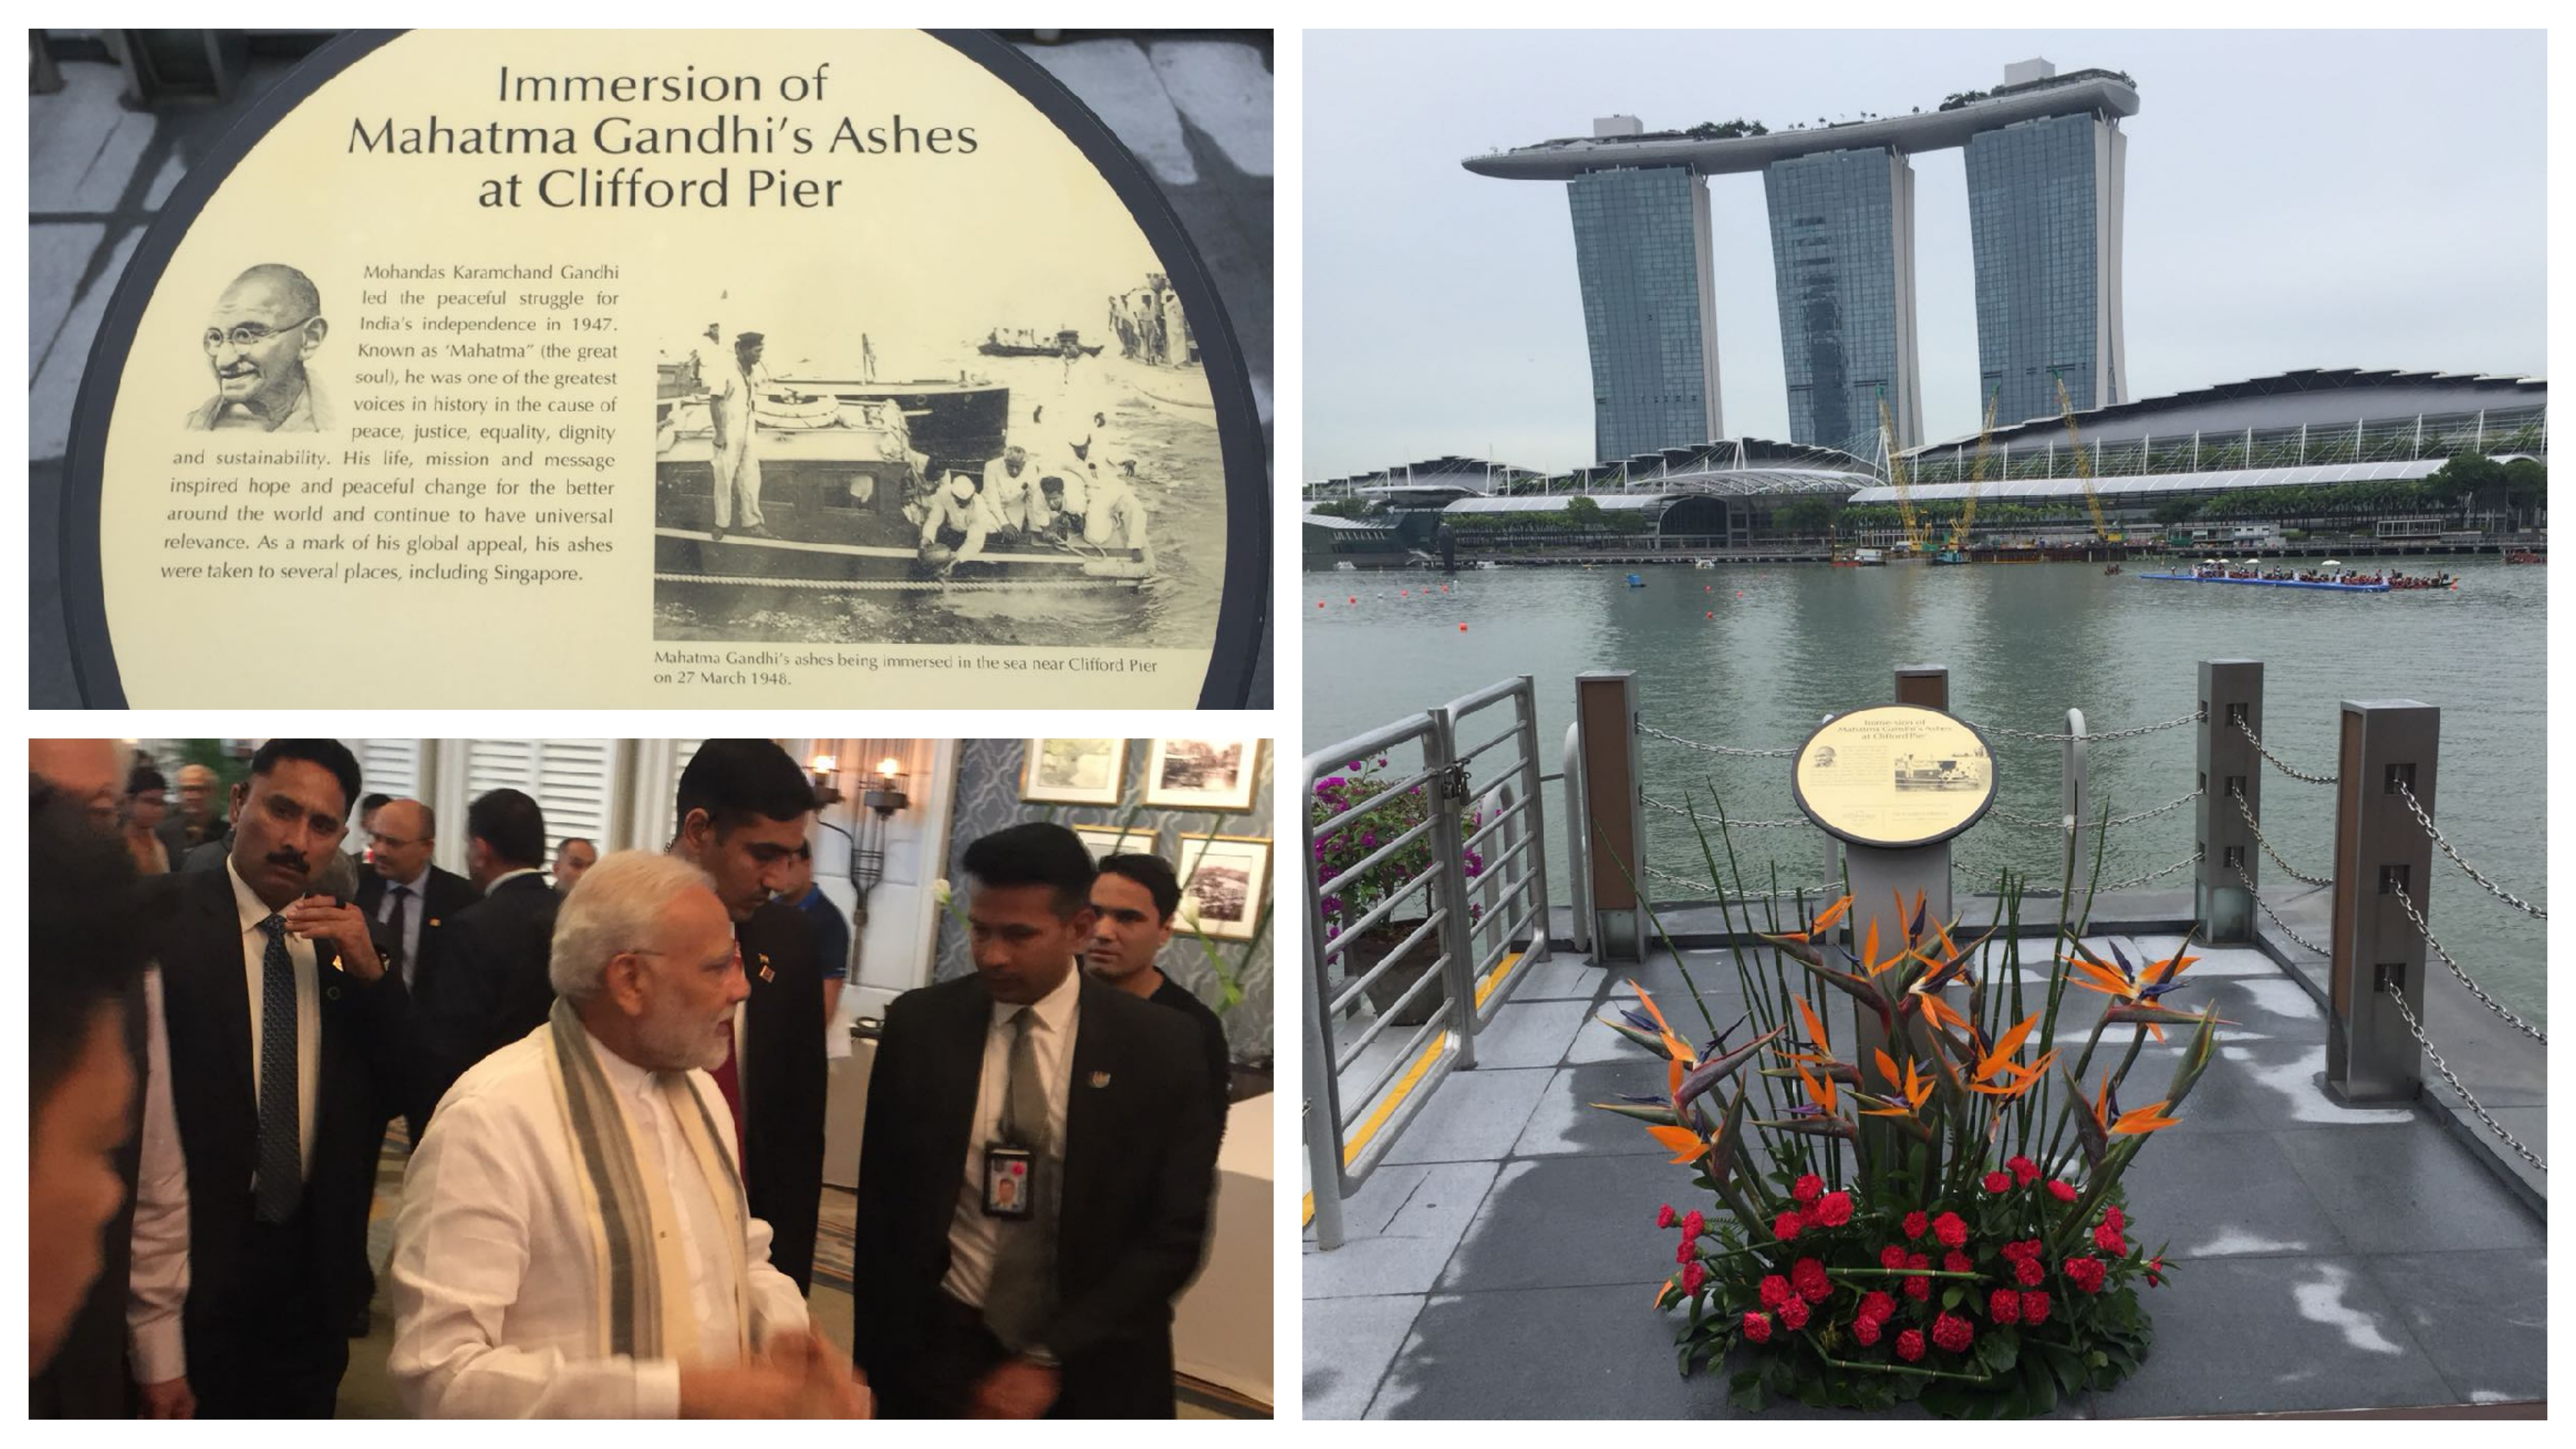 (Clockwise from left): A close-up of the plaque; a view of Marina Bay from Clifford Pie with the site of the plaque in the foreground; PM Modi arrives at the Fullerton Hotel for the unveiling ceremony. Photos: Connected to India